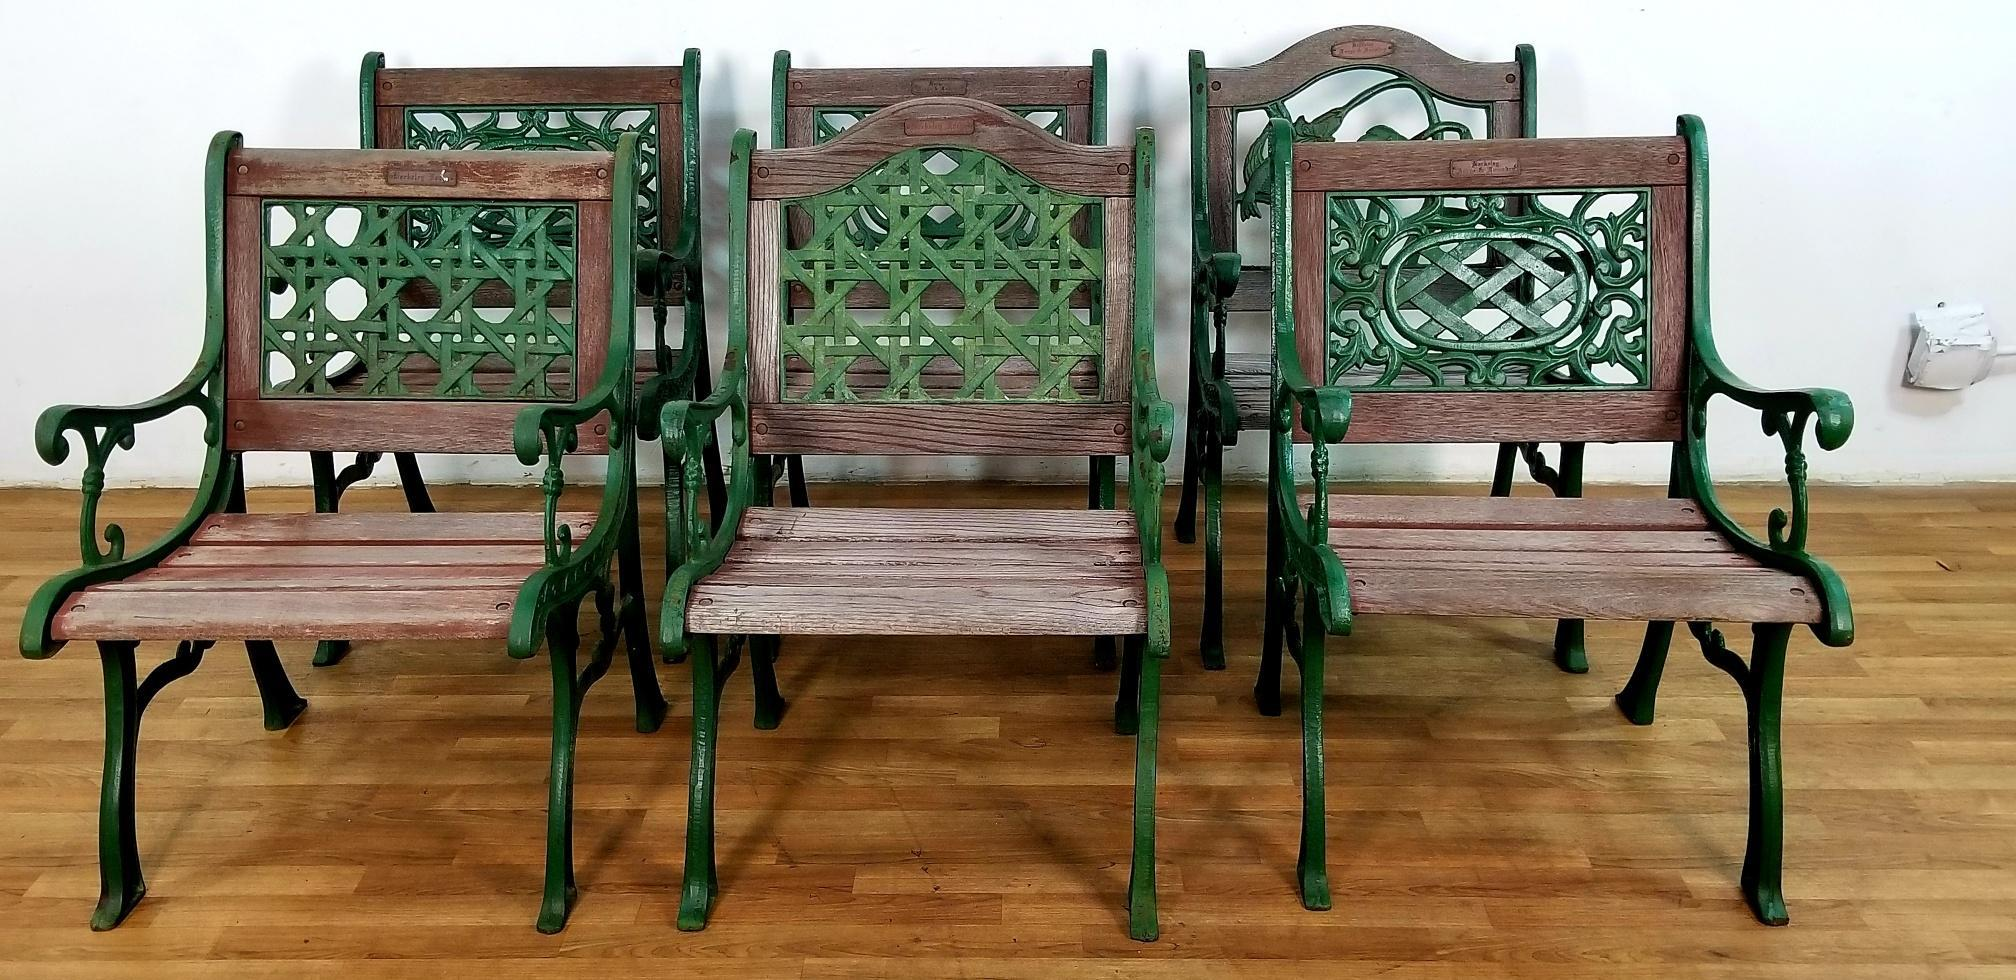 Charmant A Vintage Garden Set Of 6 Chairs From Berkeley Forge And Foundry With Oak  And Cast